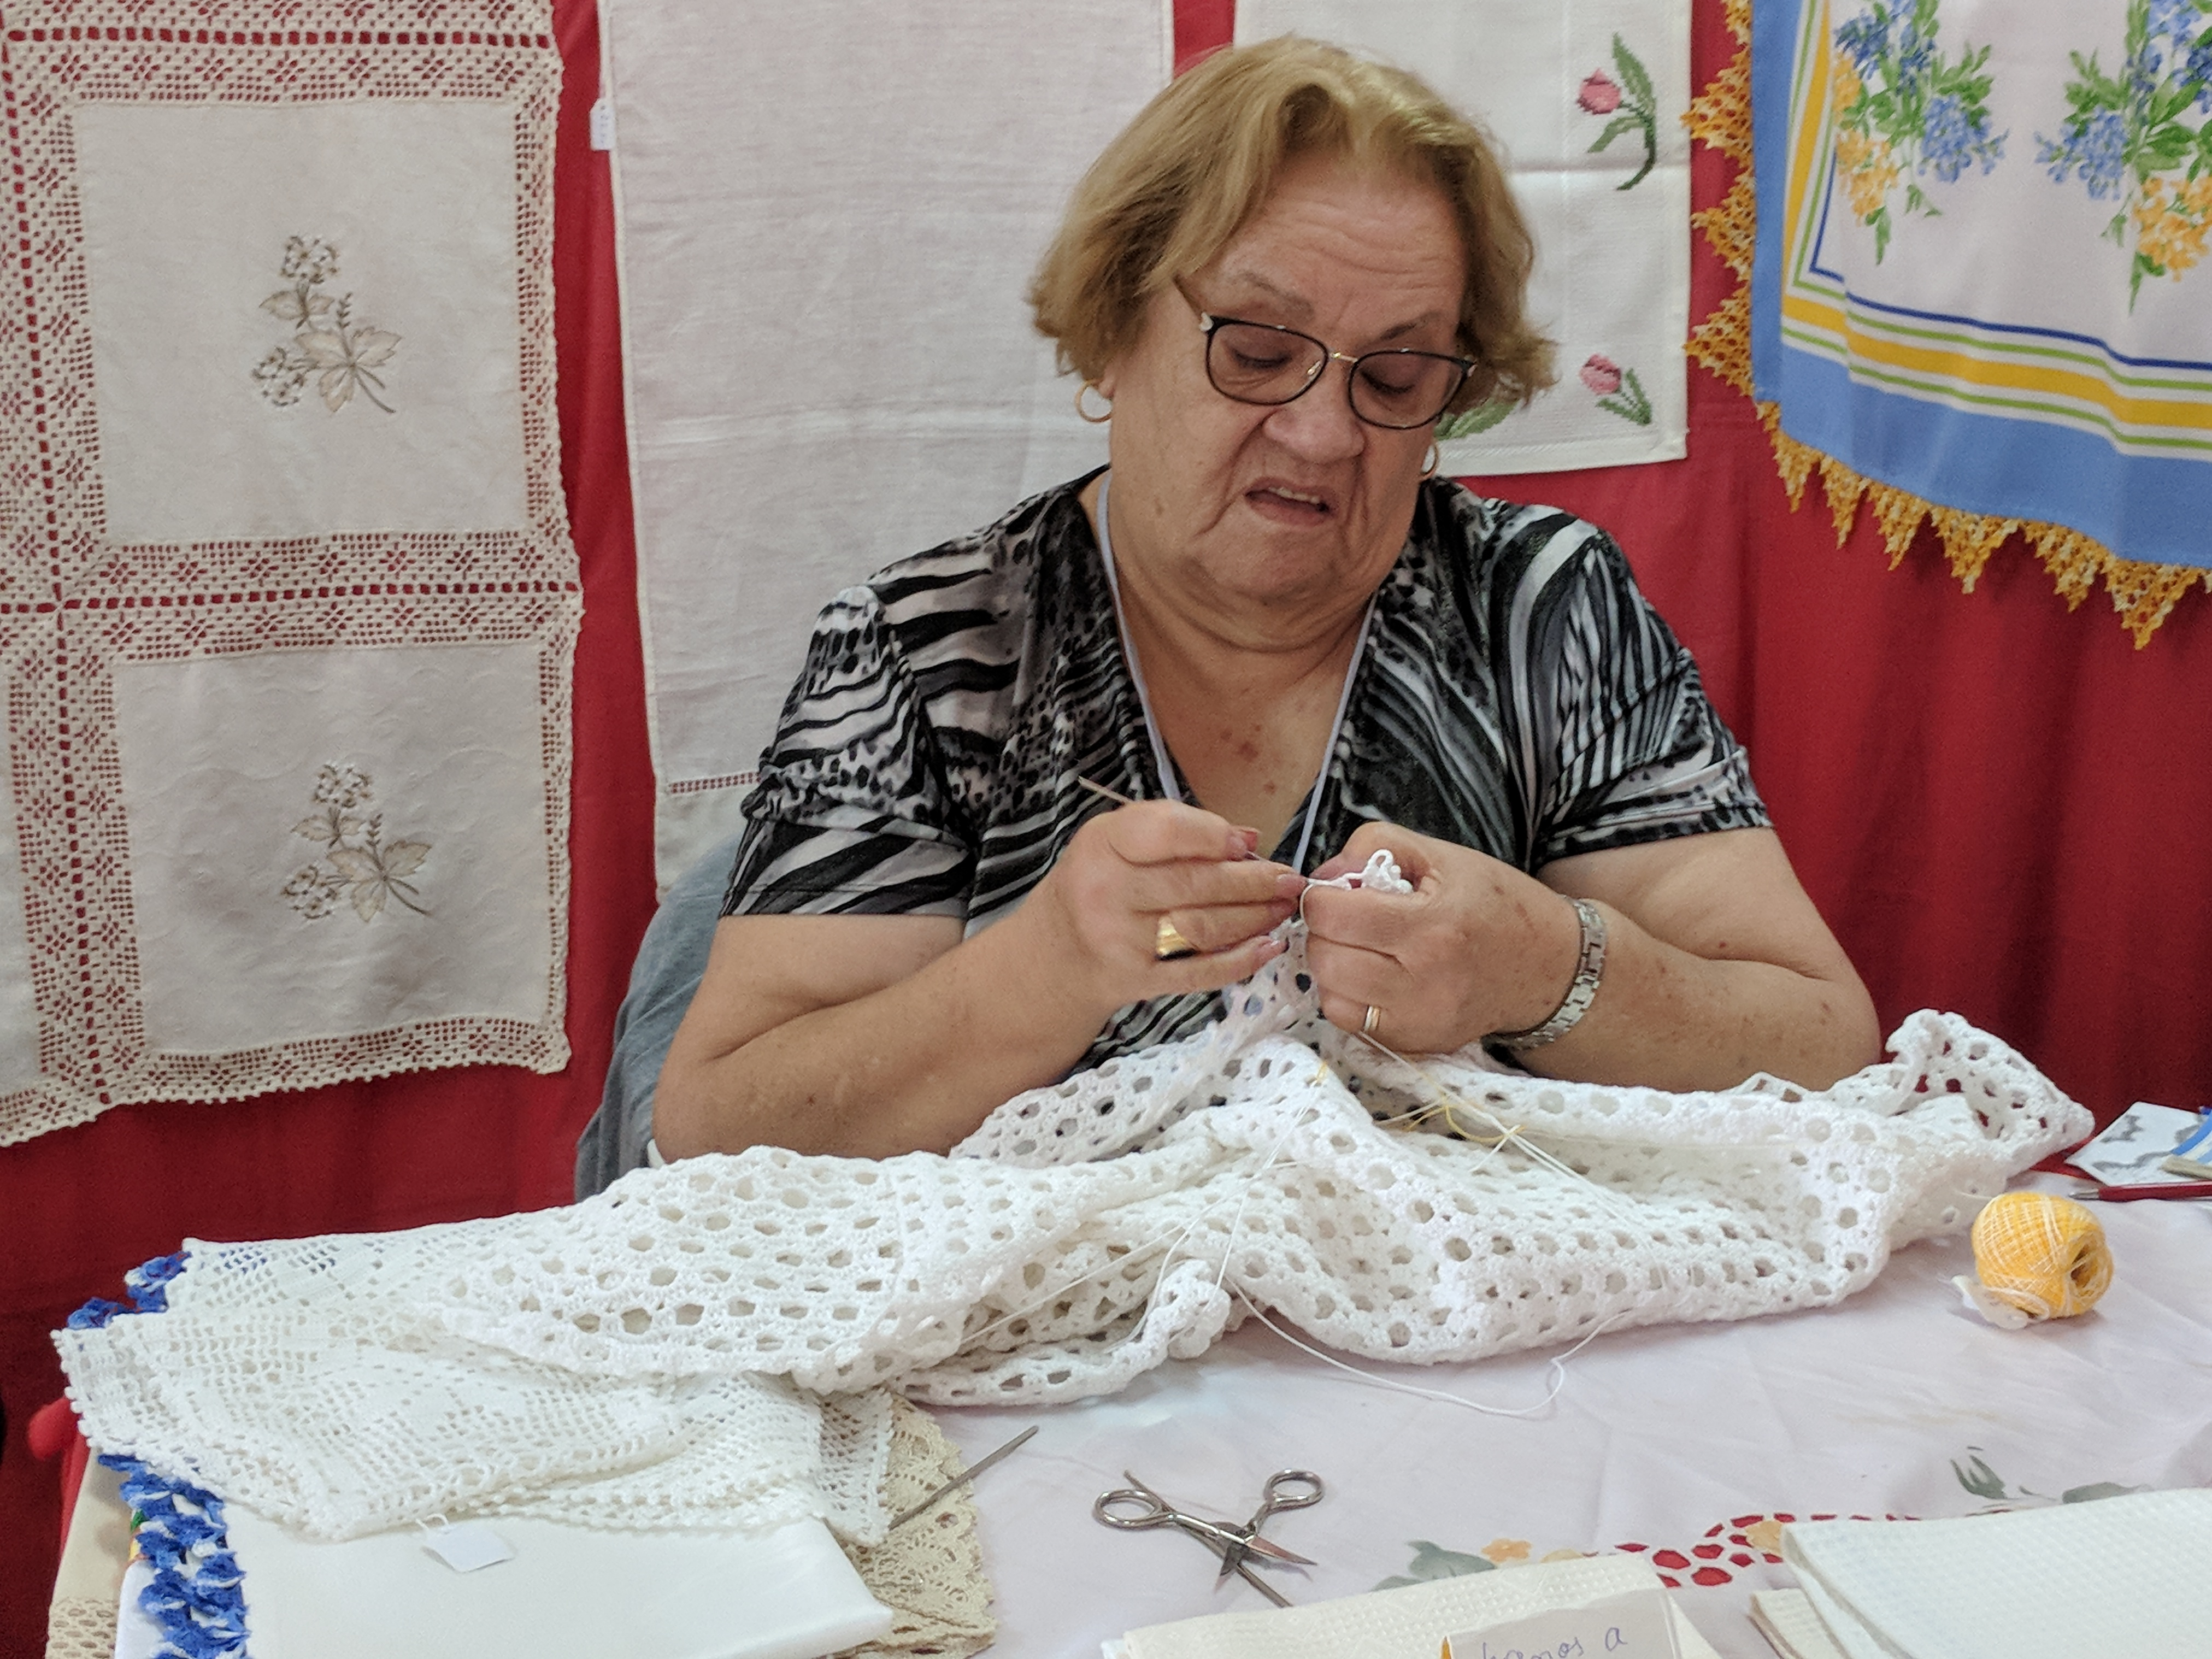 Portugal - Algarve / Fatacil (fair) in Lagoa: handwork